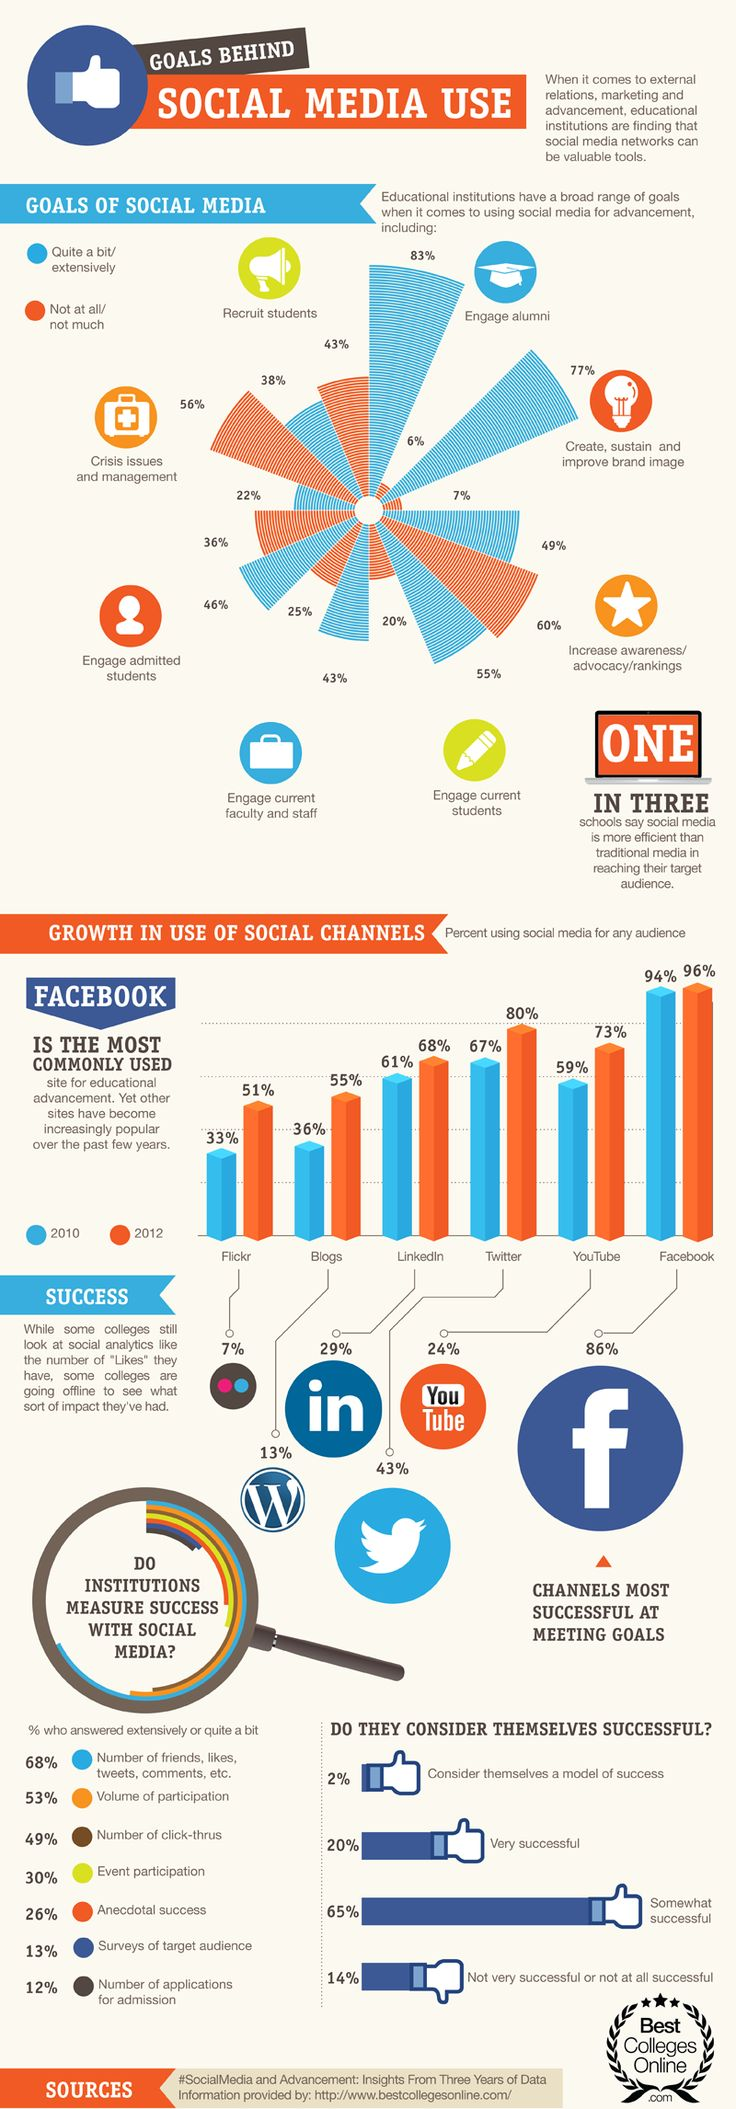 Social Media Use In Education, The Goals Schools Aim To